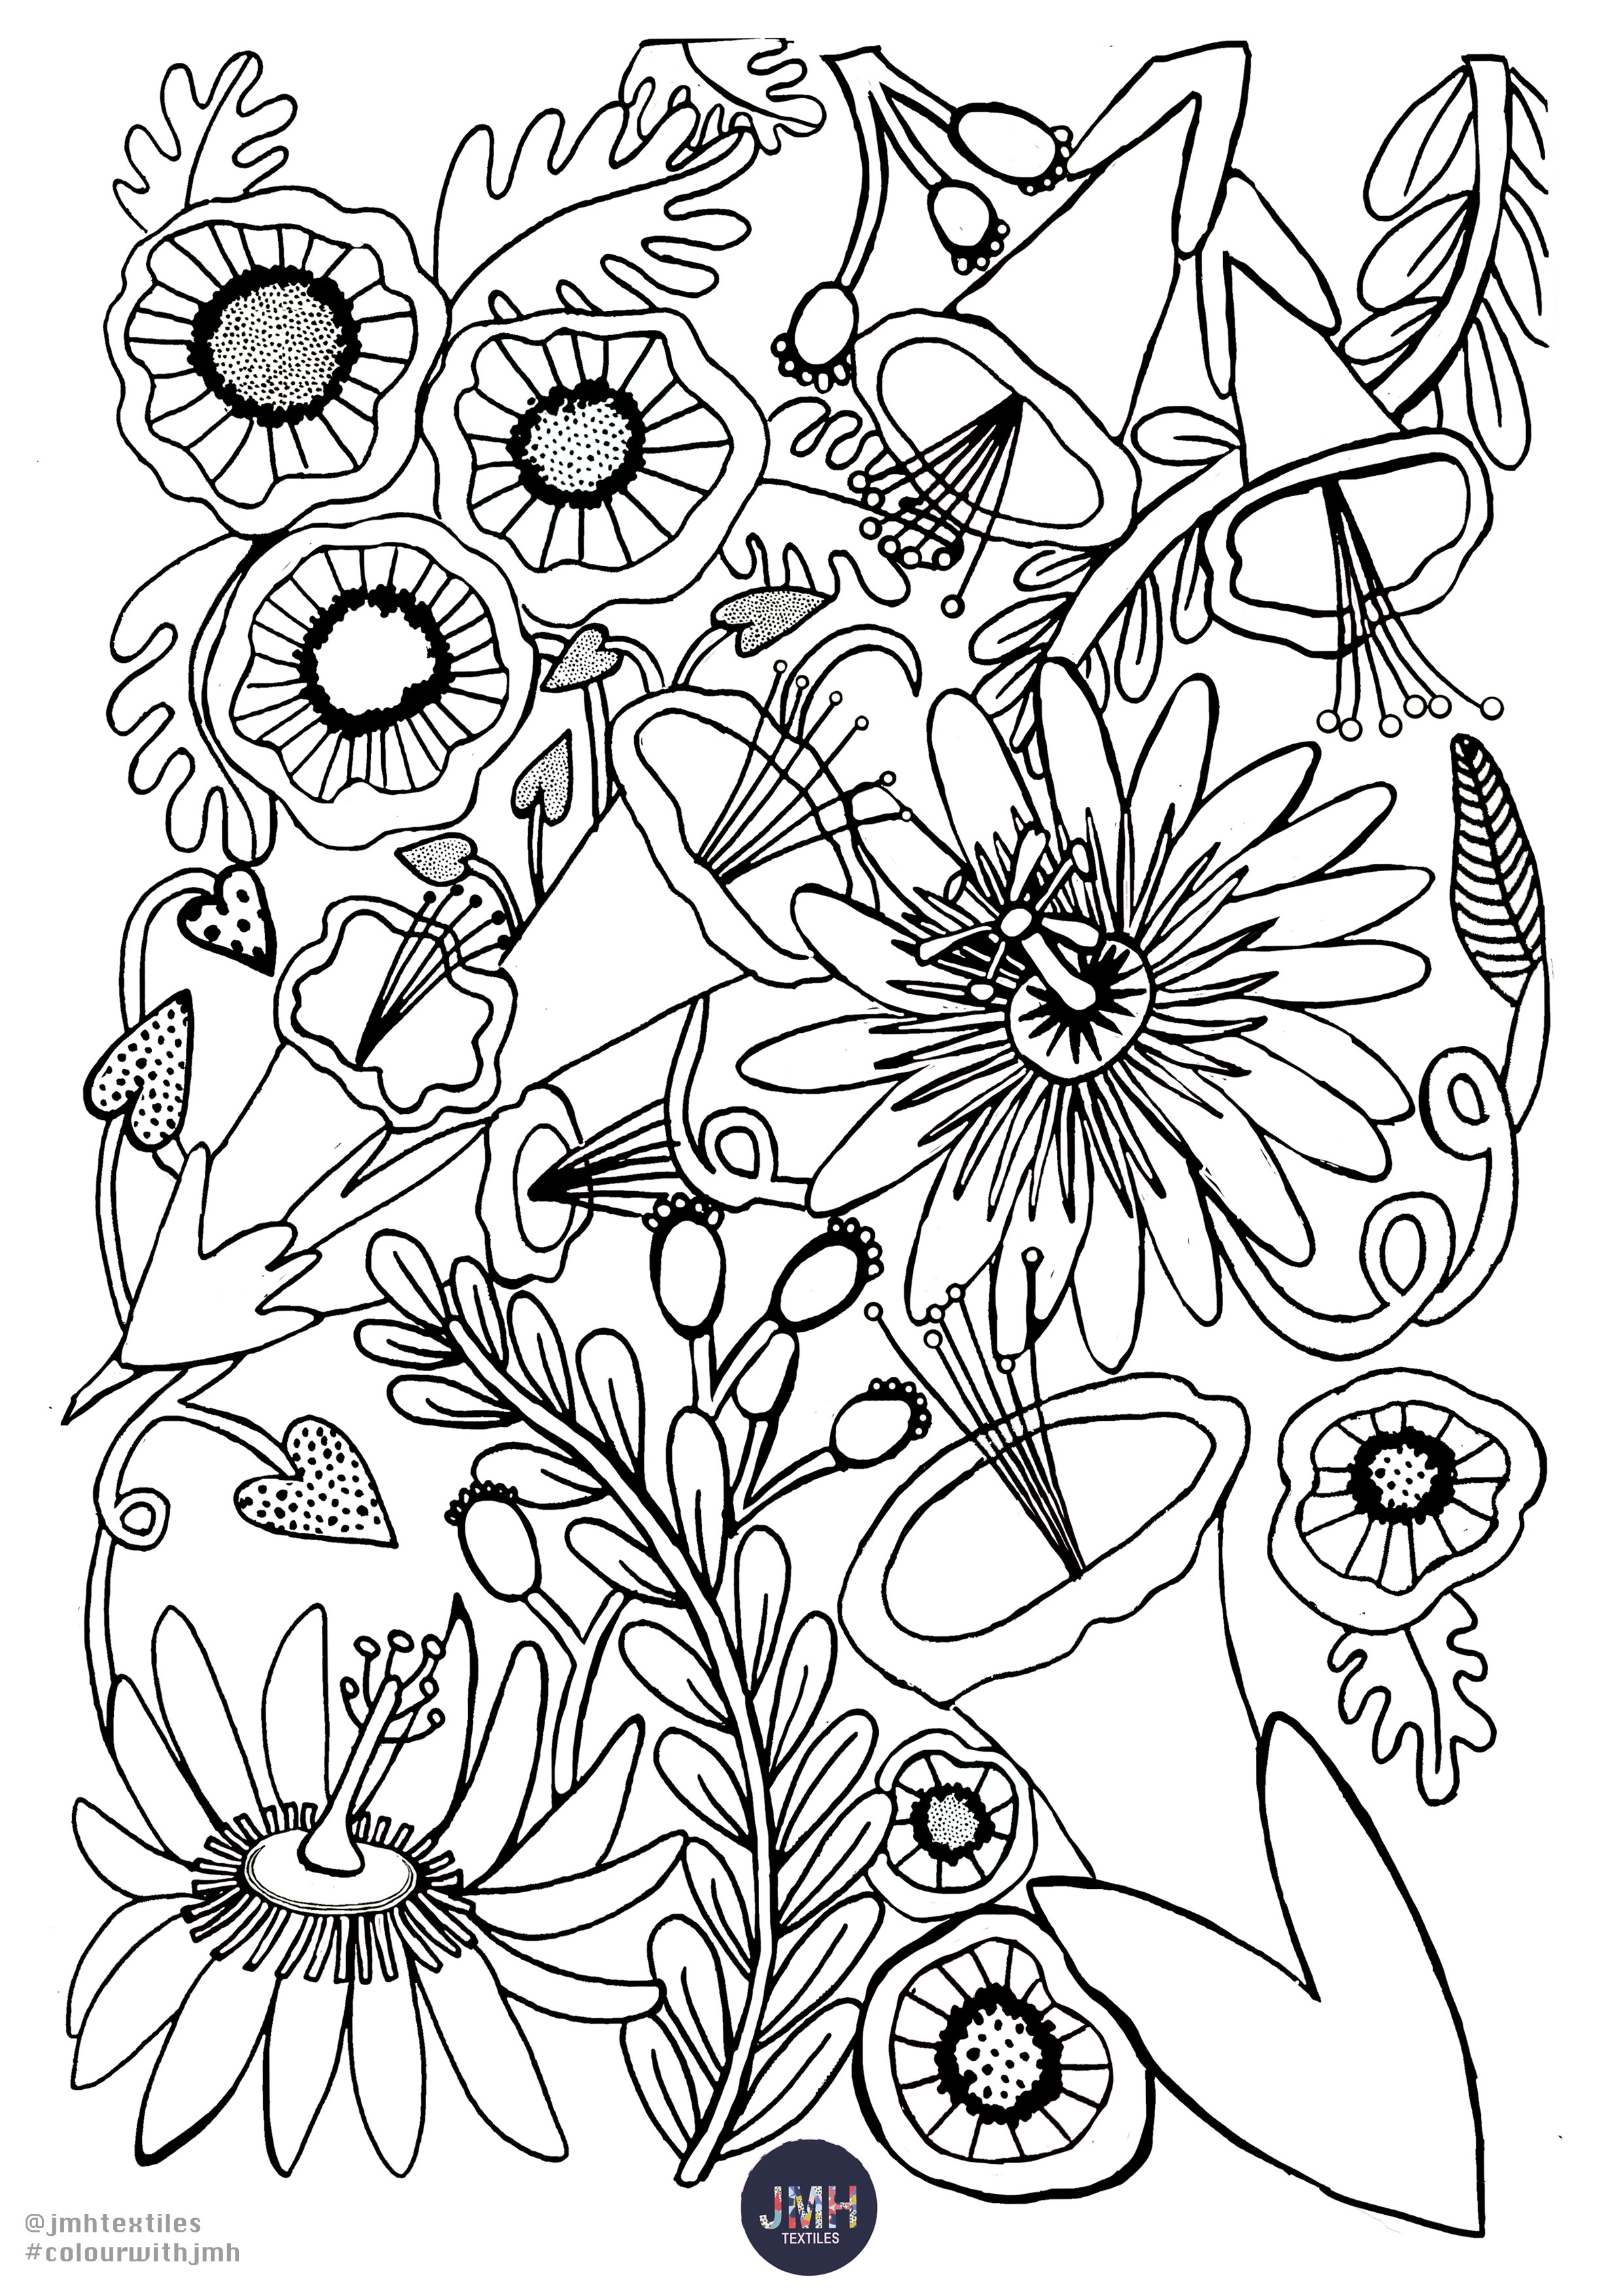 JMH flower colouring page copy